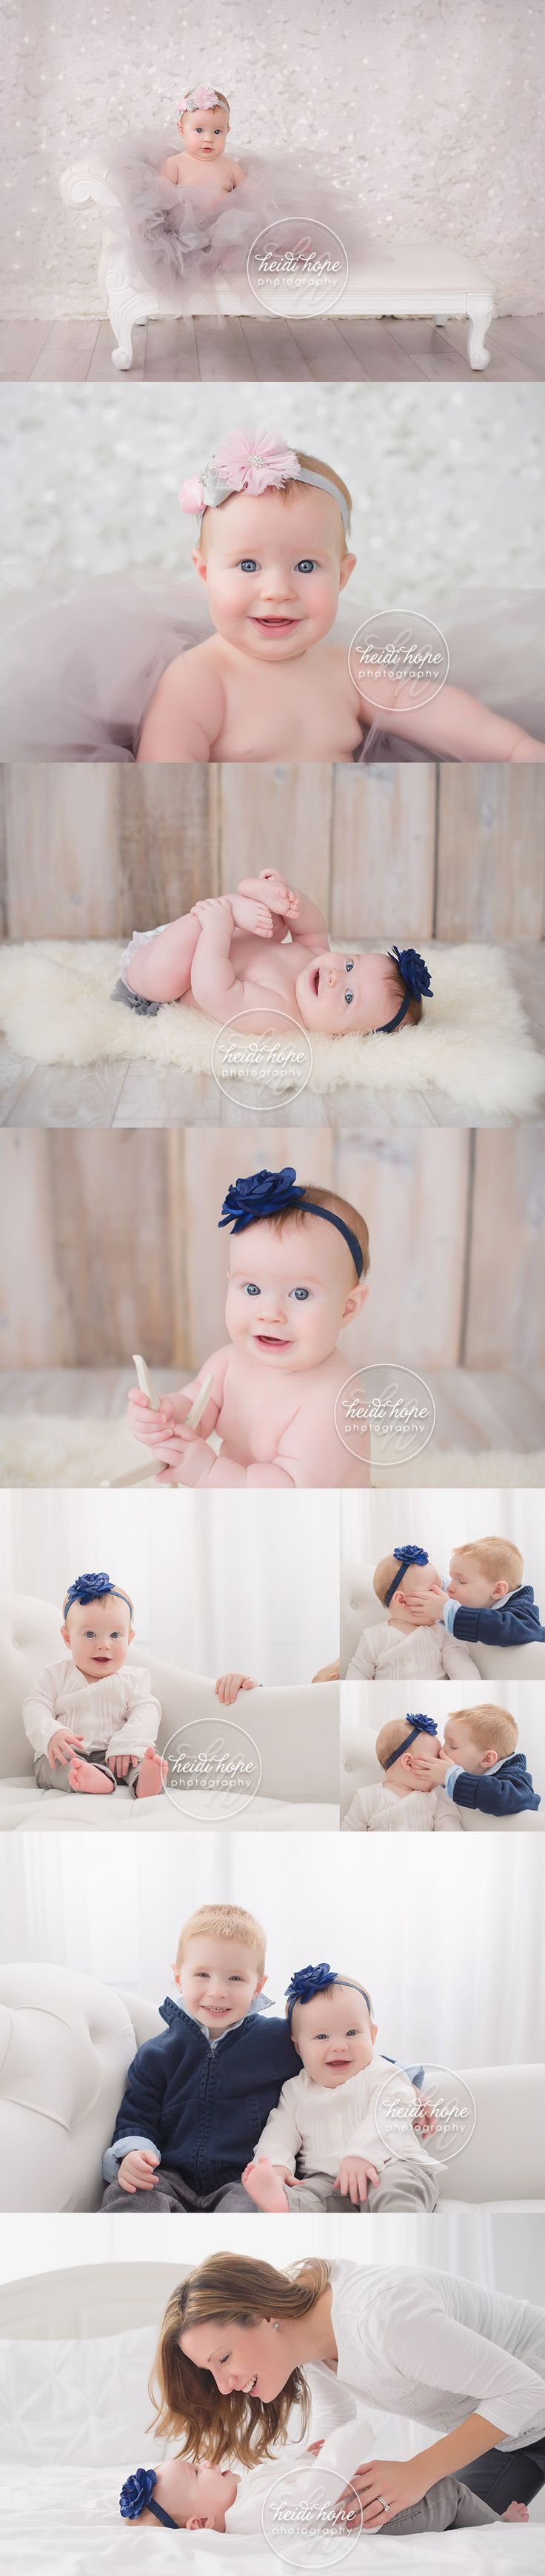 6 month old baby girl session with big brother and family